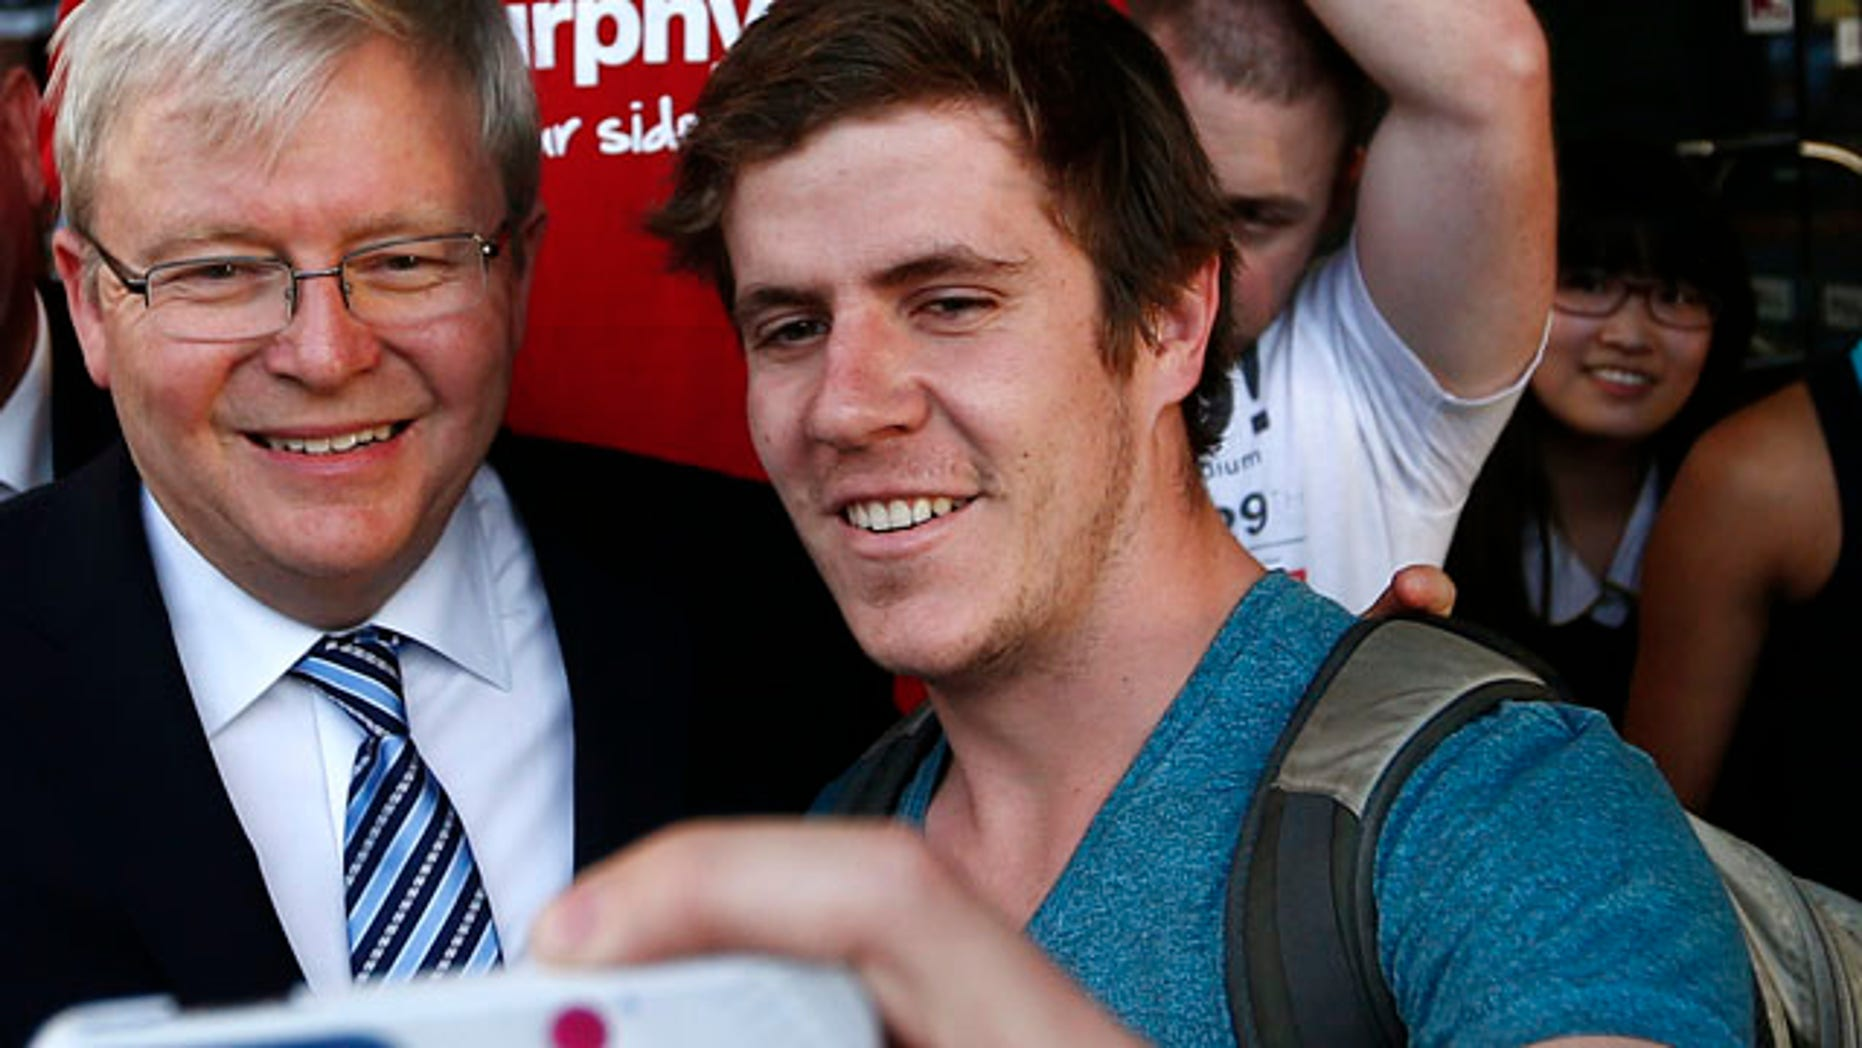 Sept. 5, 2013: Australian Prime Minister Kevin Rudd (2nd L) poses as a man takes a 'selfie' on his mobile phone.